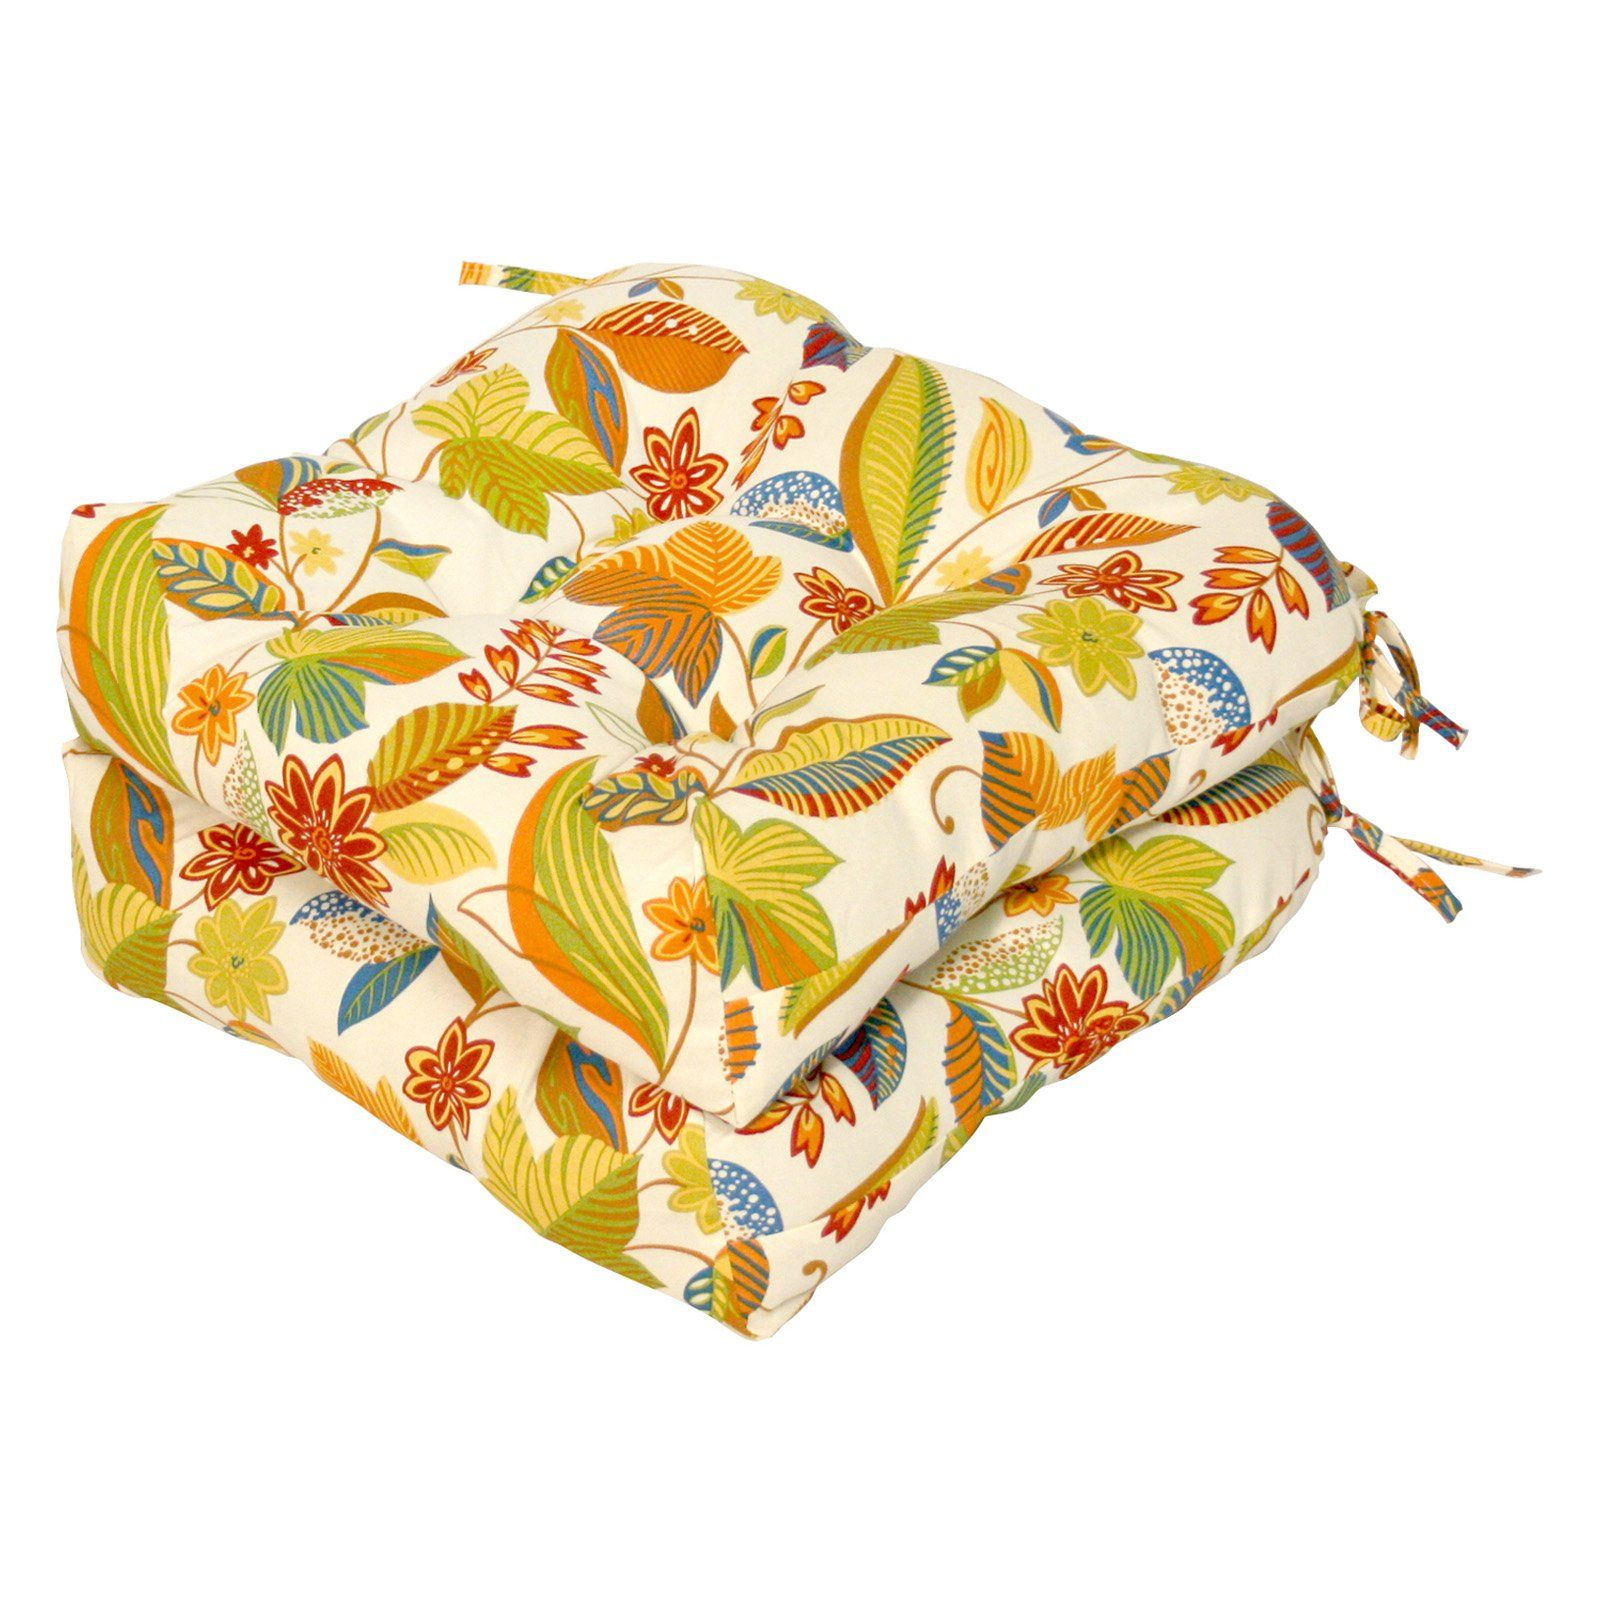 Greendale Home Fashions 20 in. Outdoor Seat Cushion